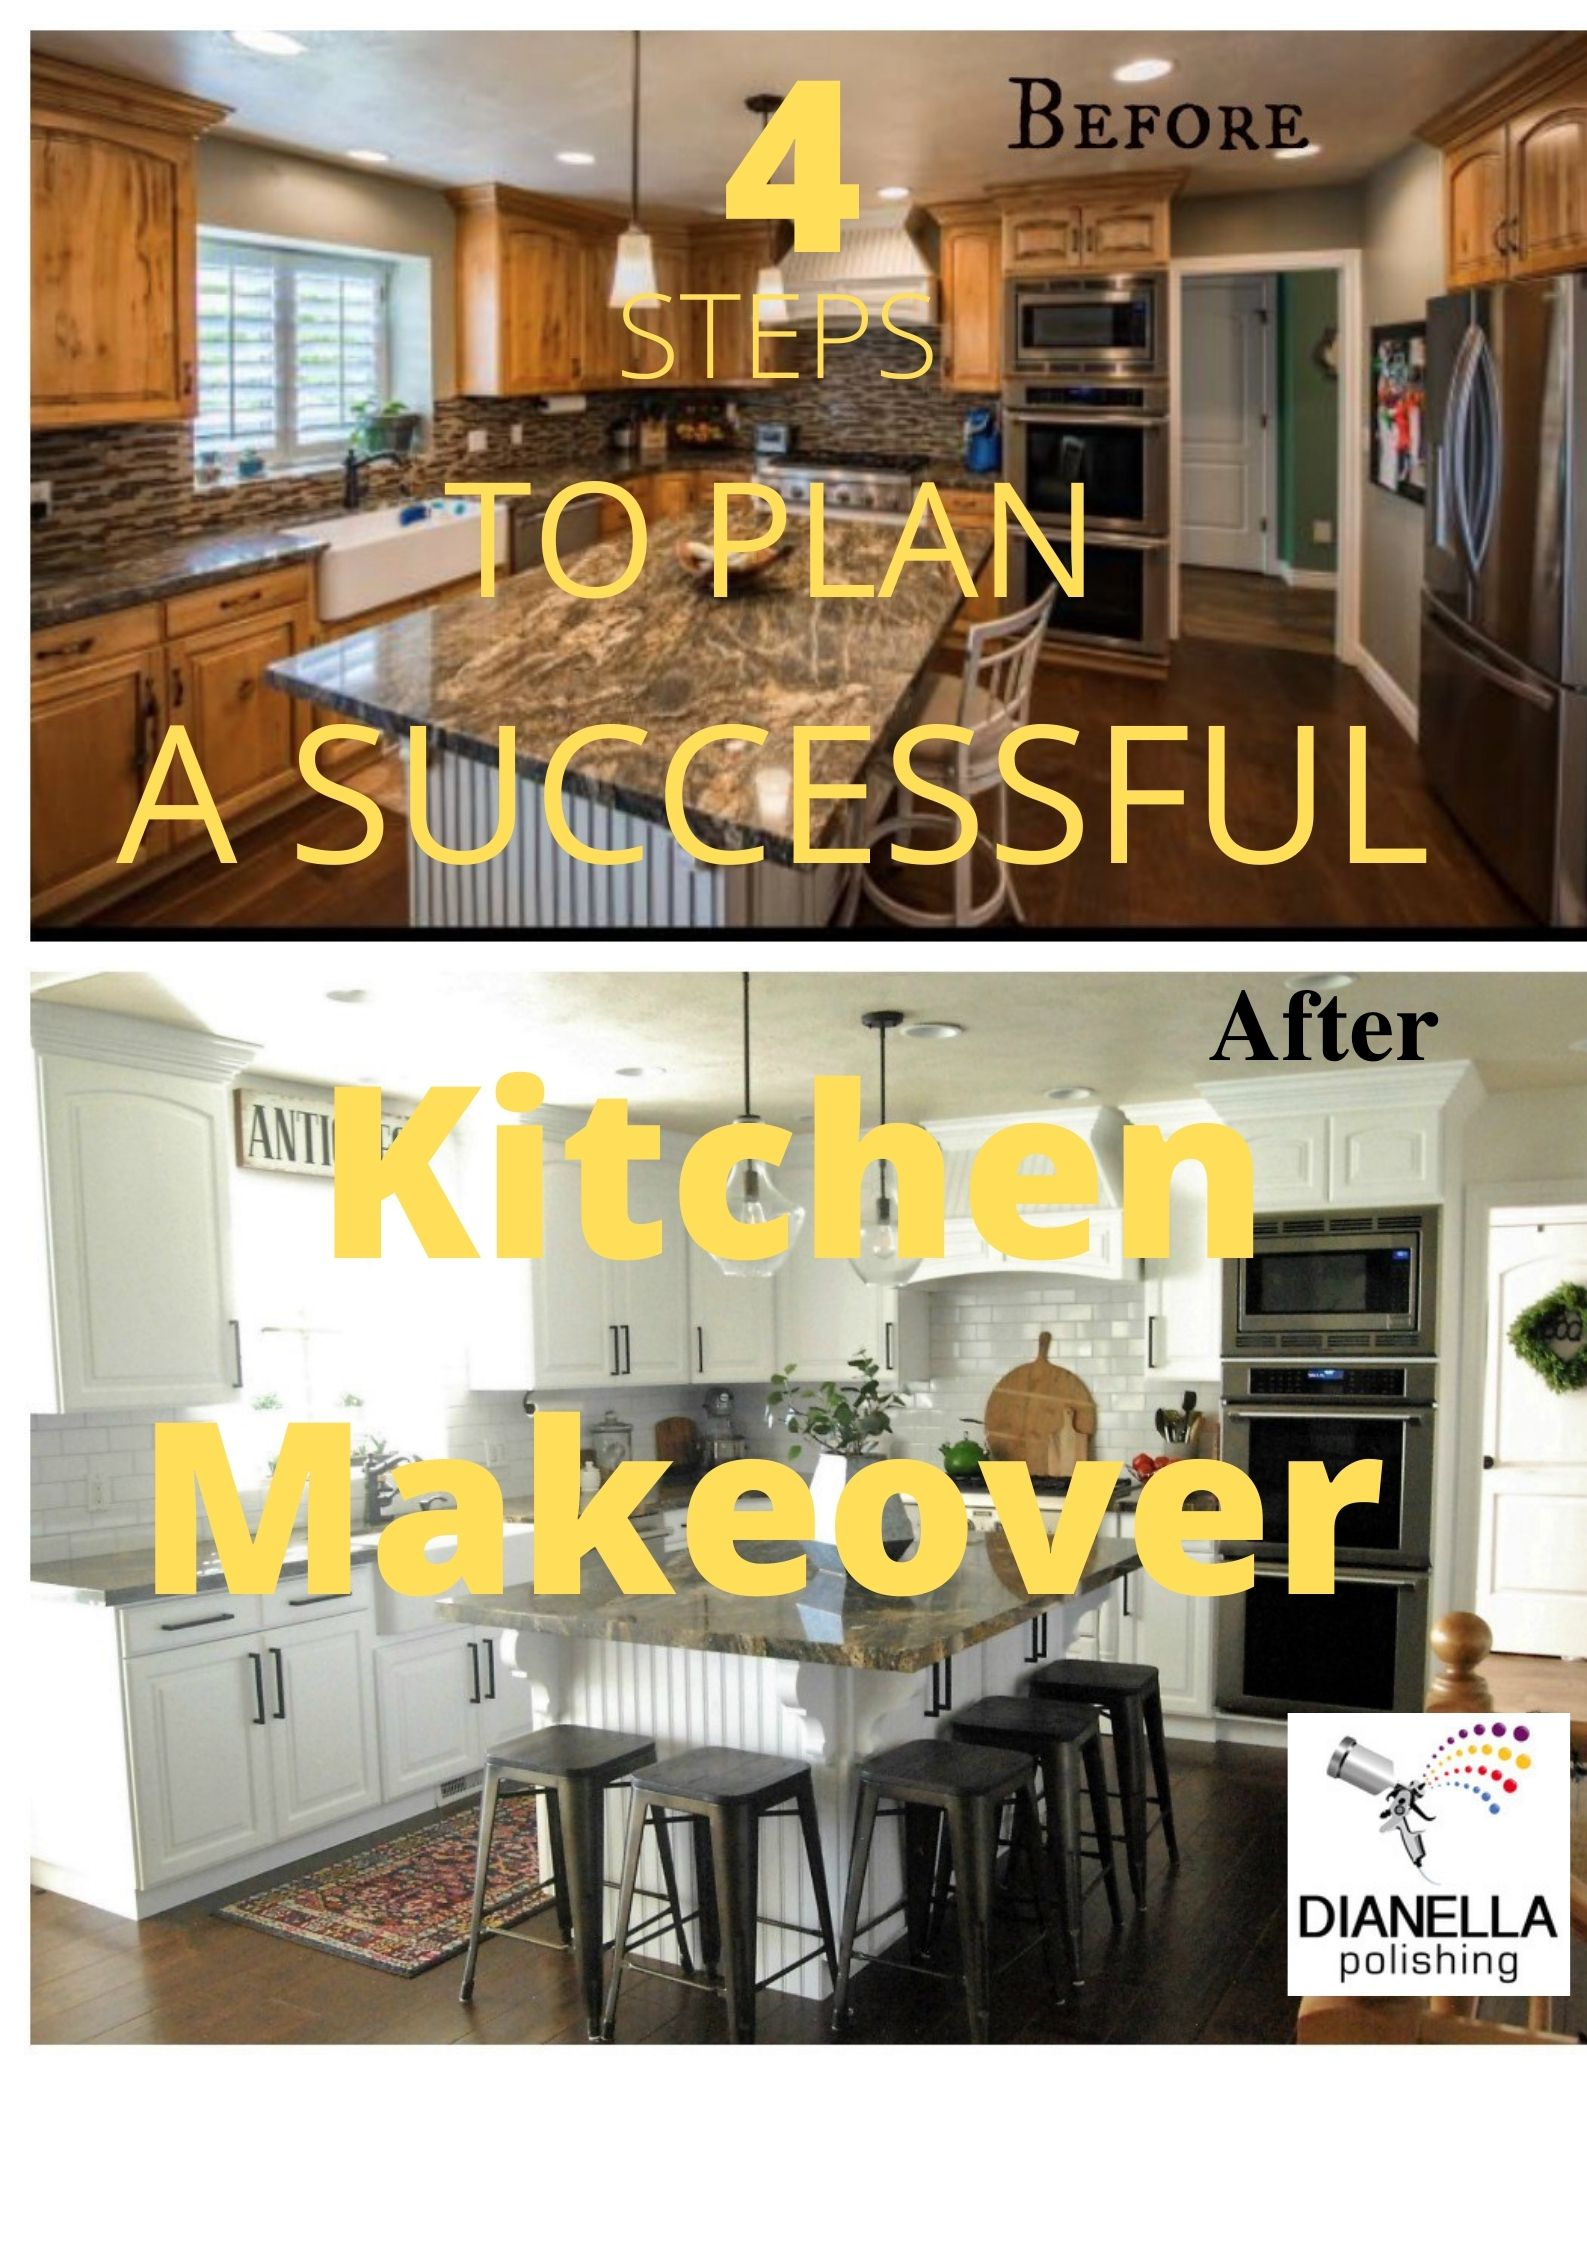 There are 4 steps to plan a successful kitchen makover